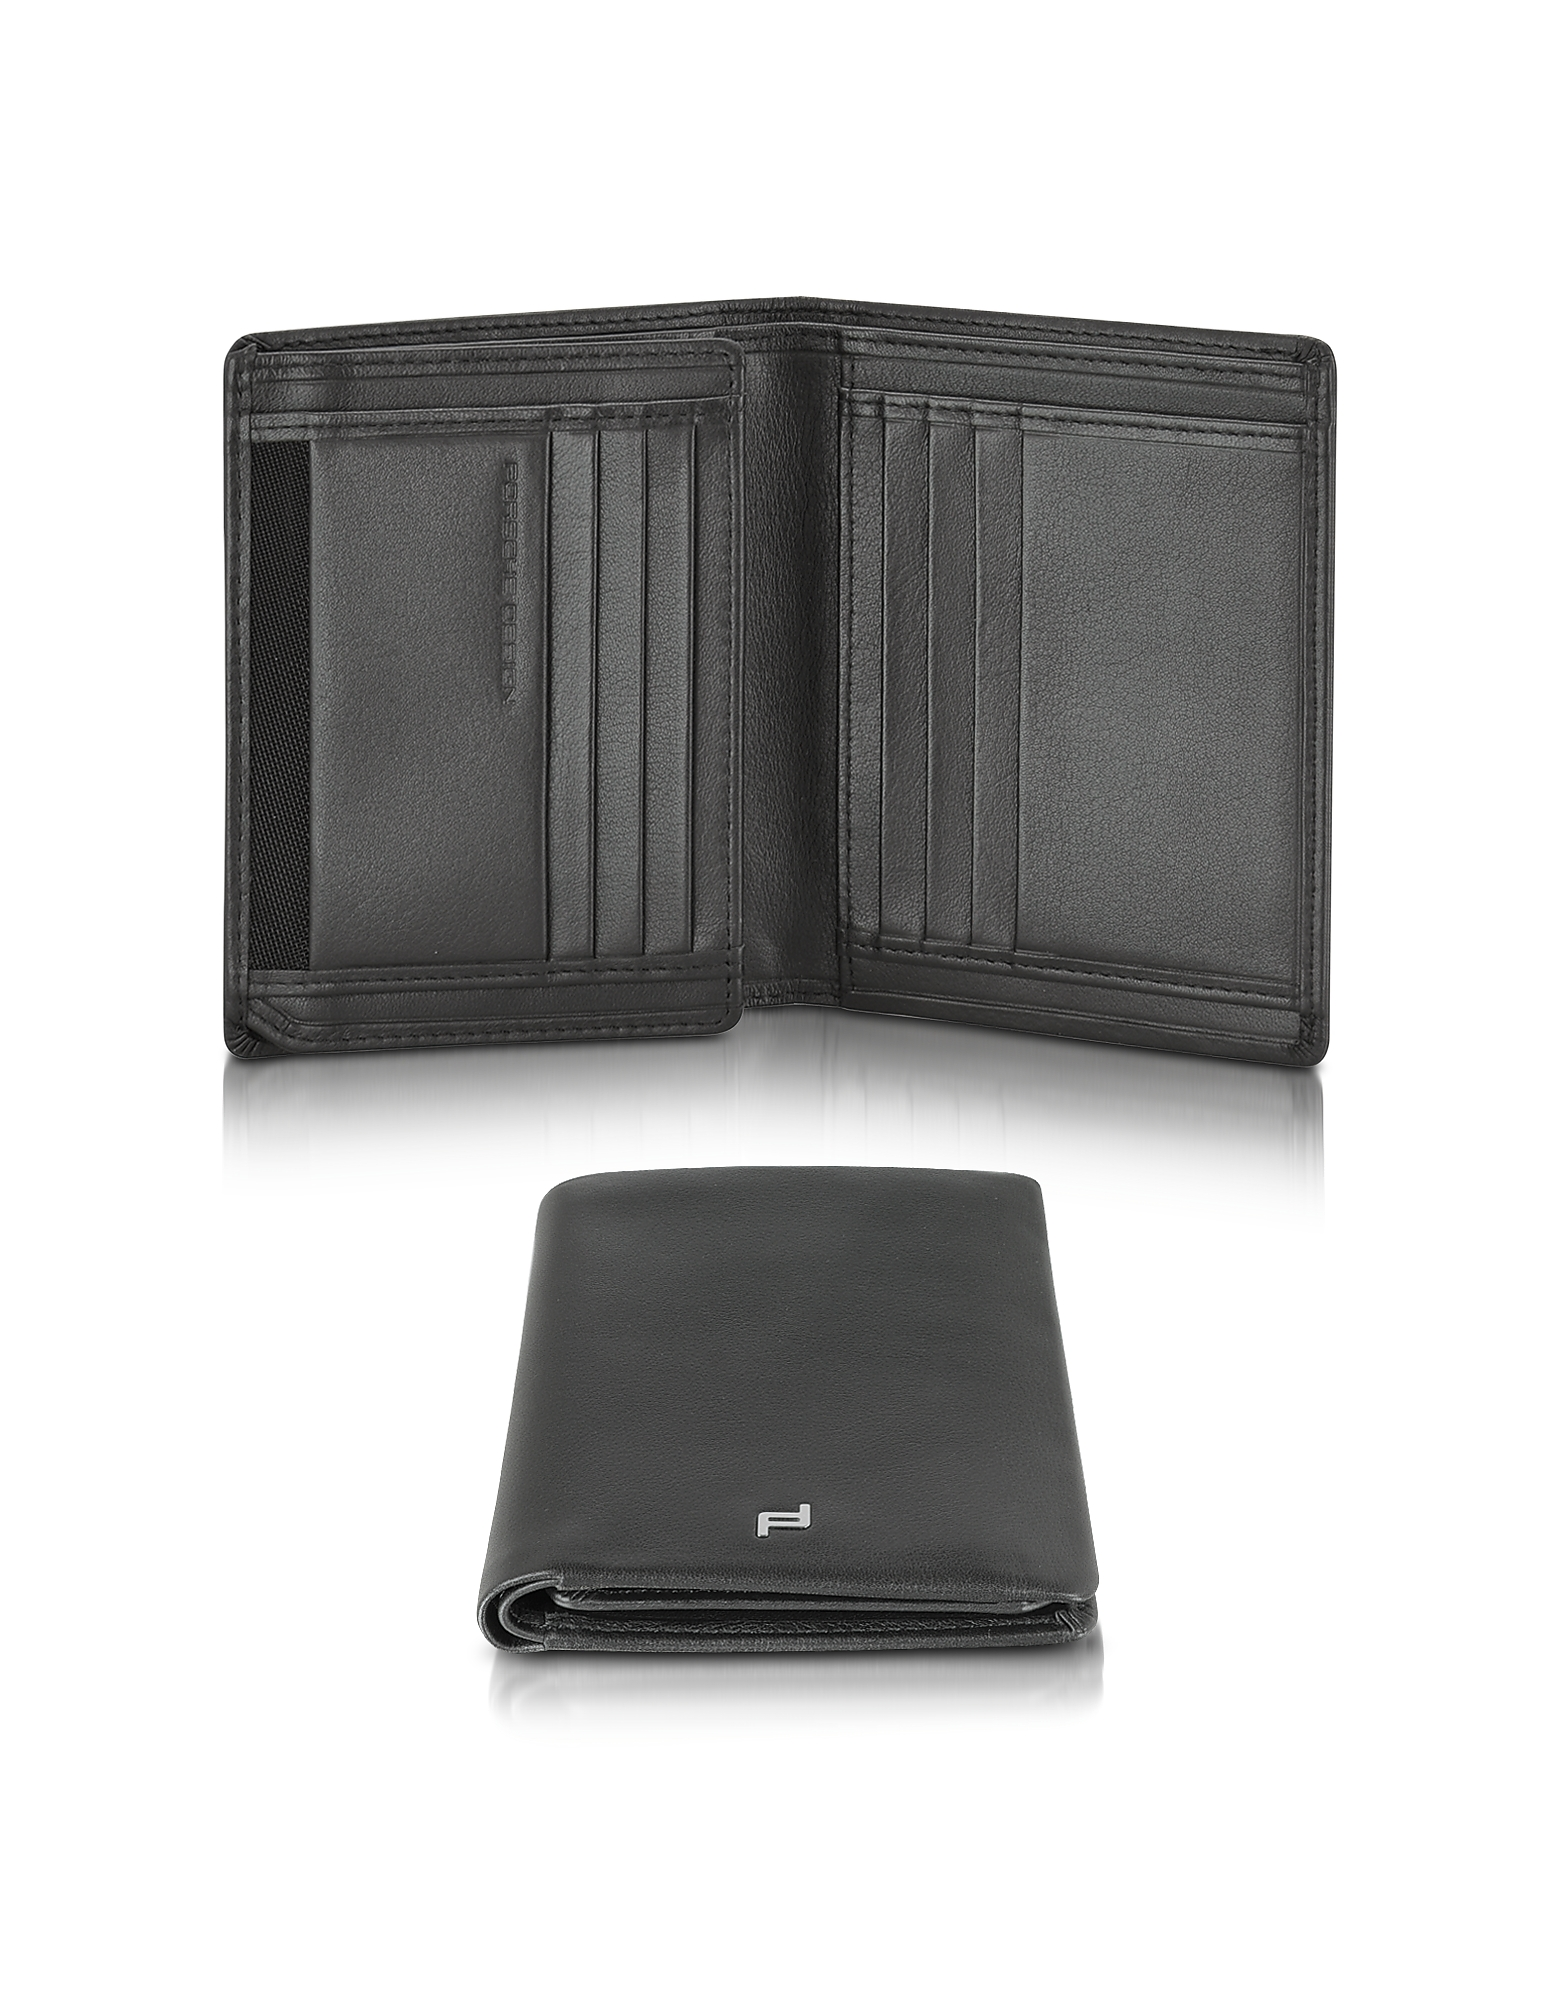 Porsche Design Wallets, Touch Black Leather V11 Vertical Billfold Wallet